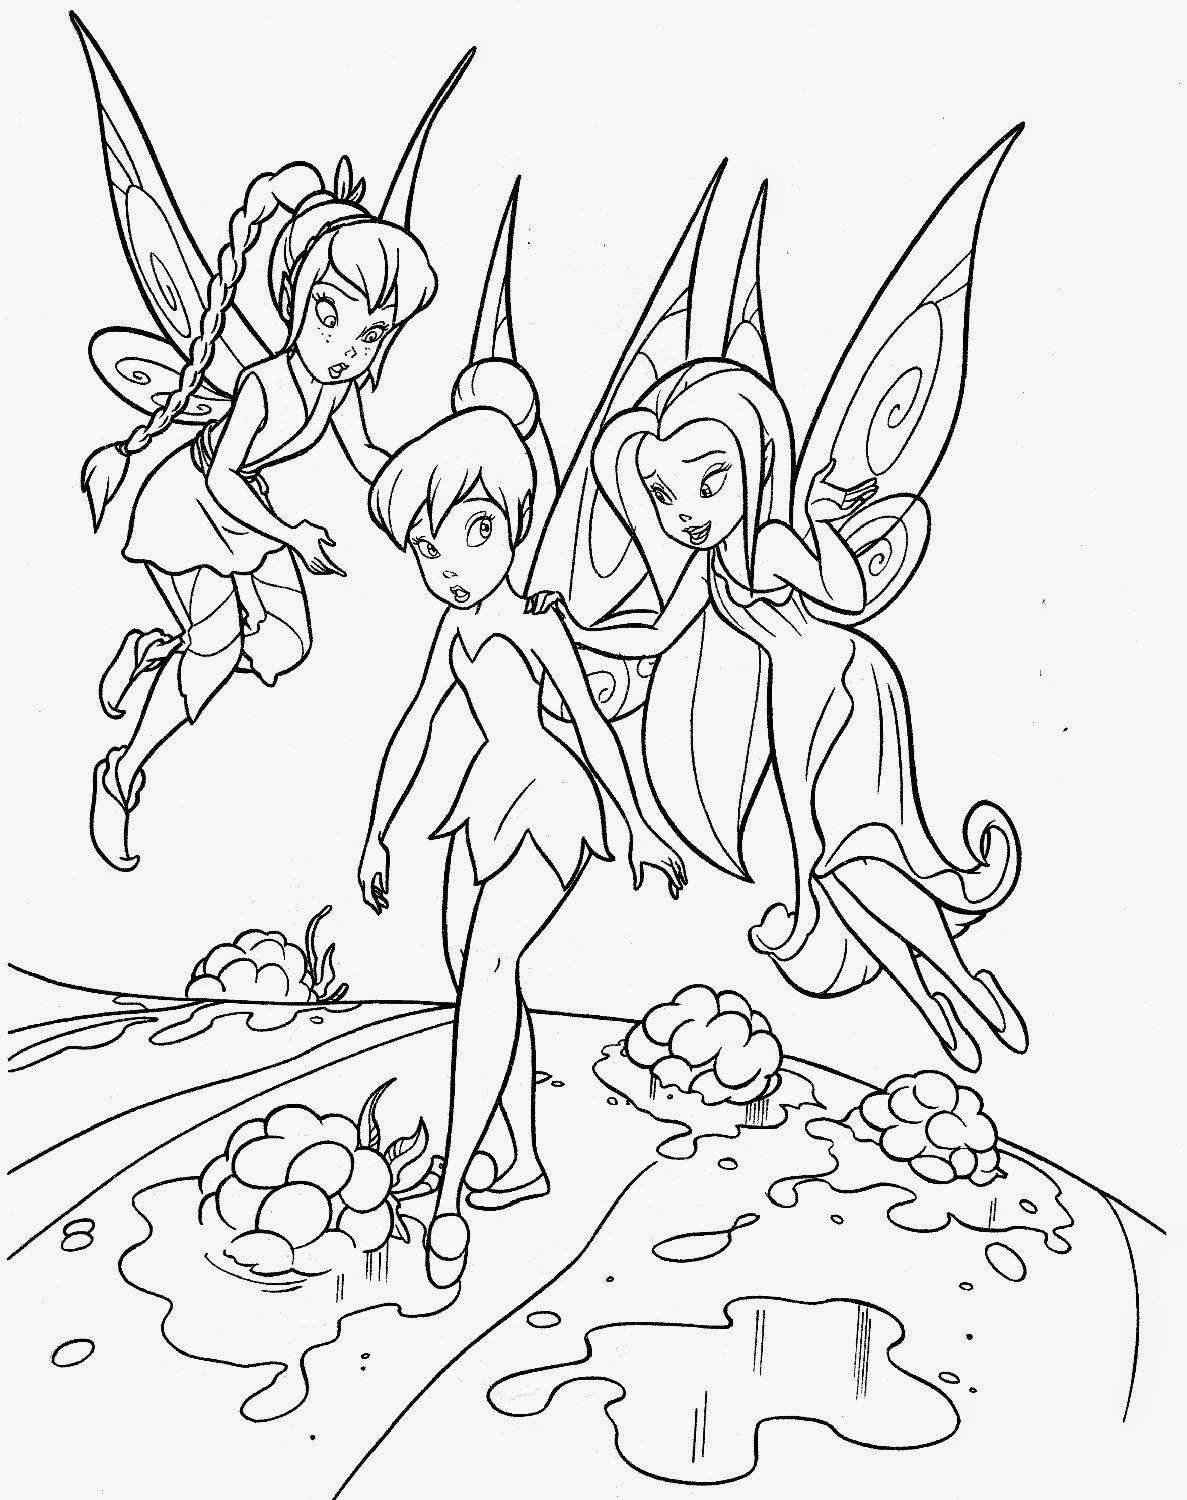 tinkerbell colouring in pages coloring pages tinkerbell coloring pages and clip art pages in colouring tinkerbell